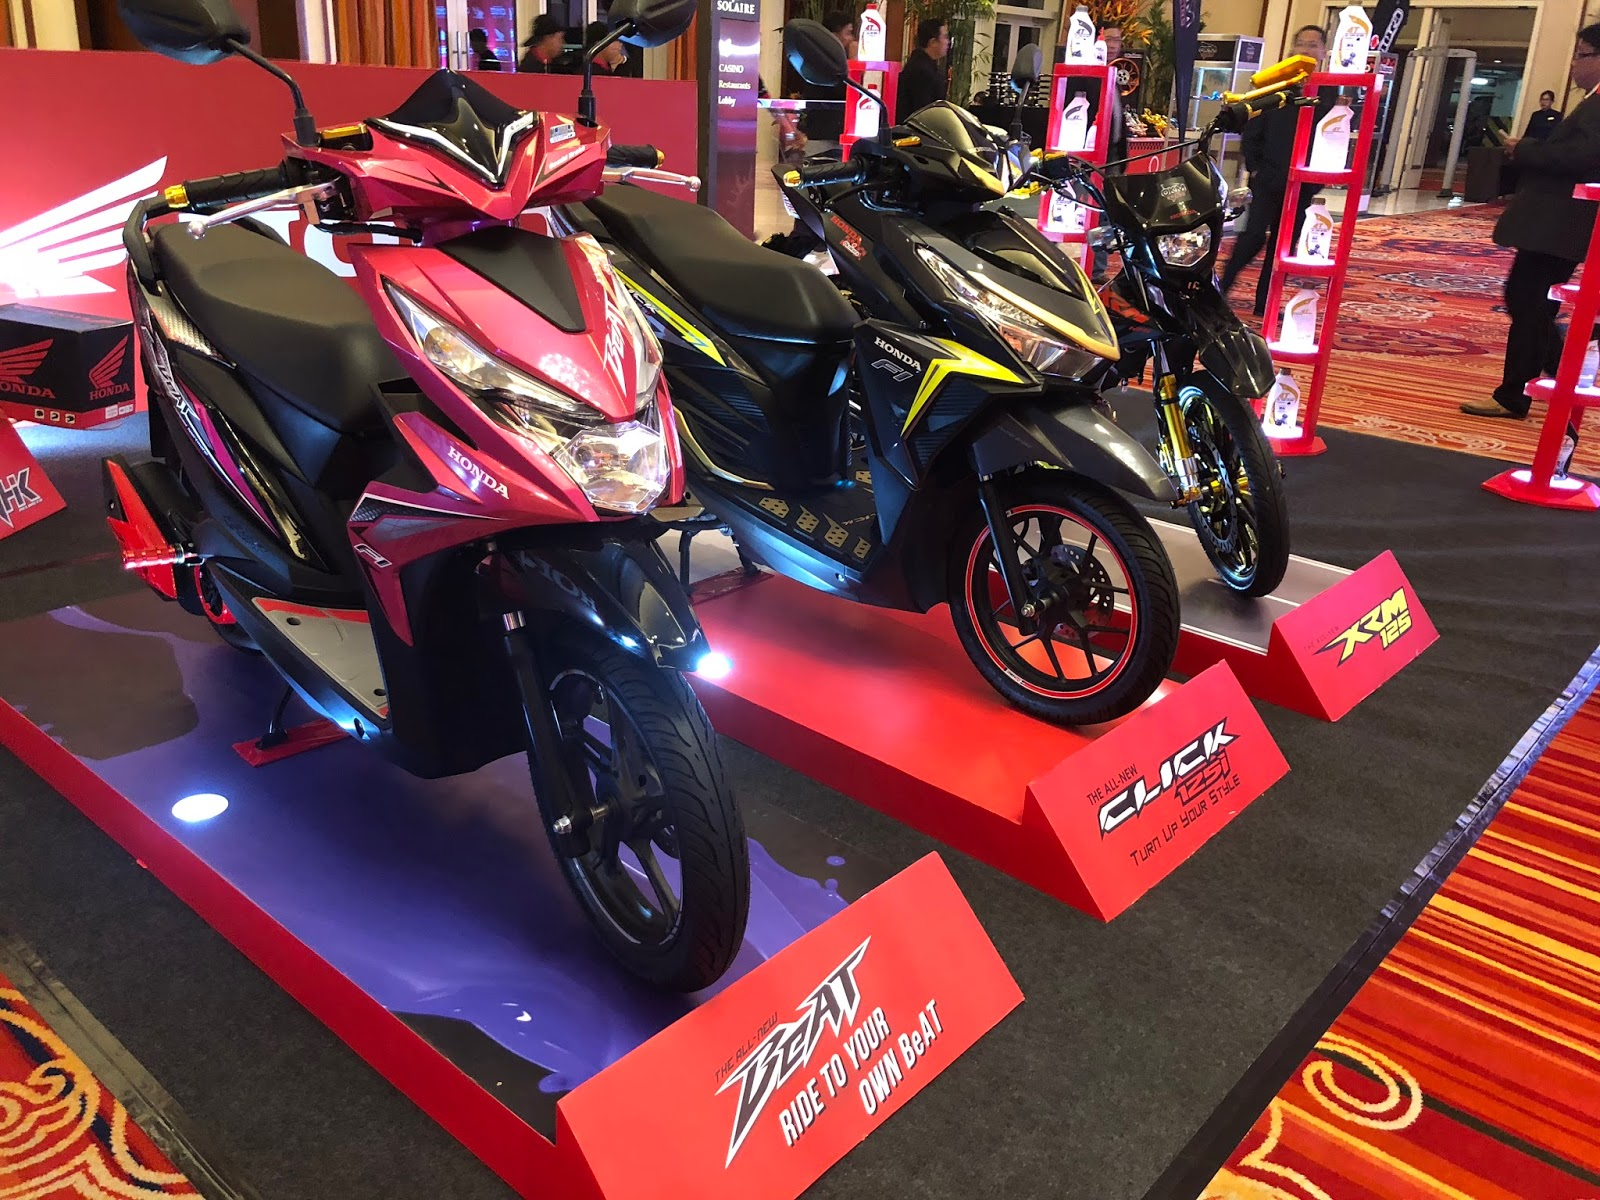 Market Segmentation Of Honda In The Philippines Who Is Target For Each